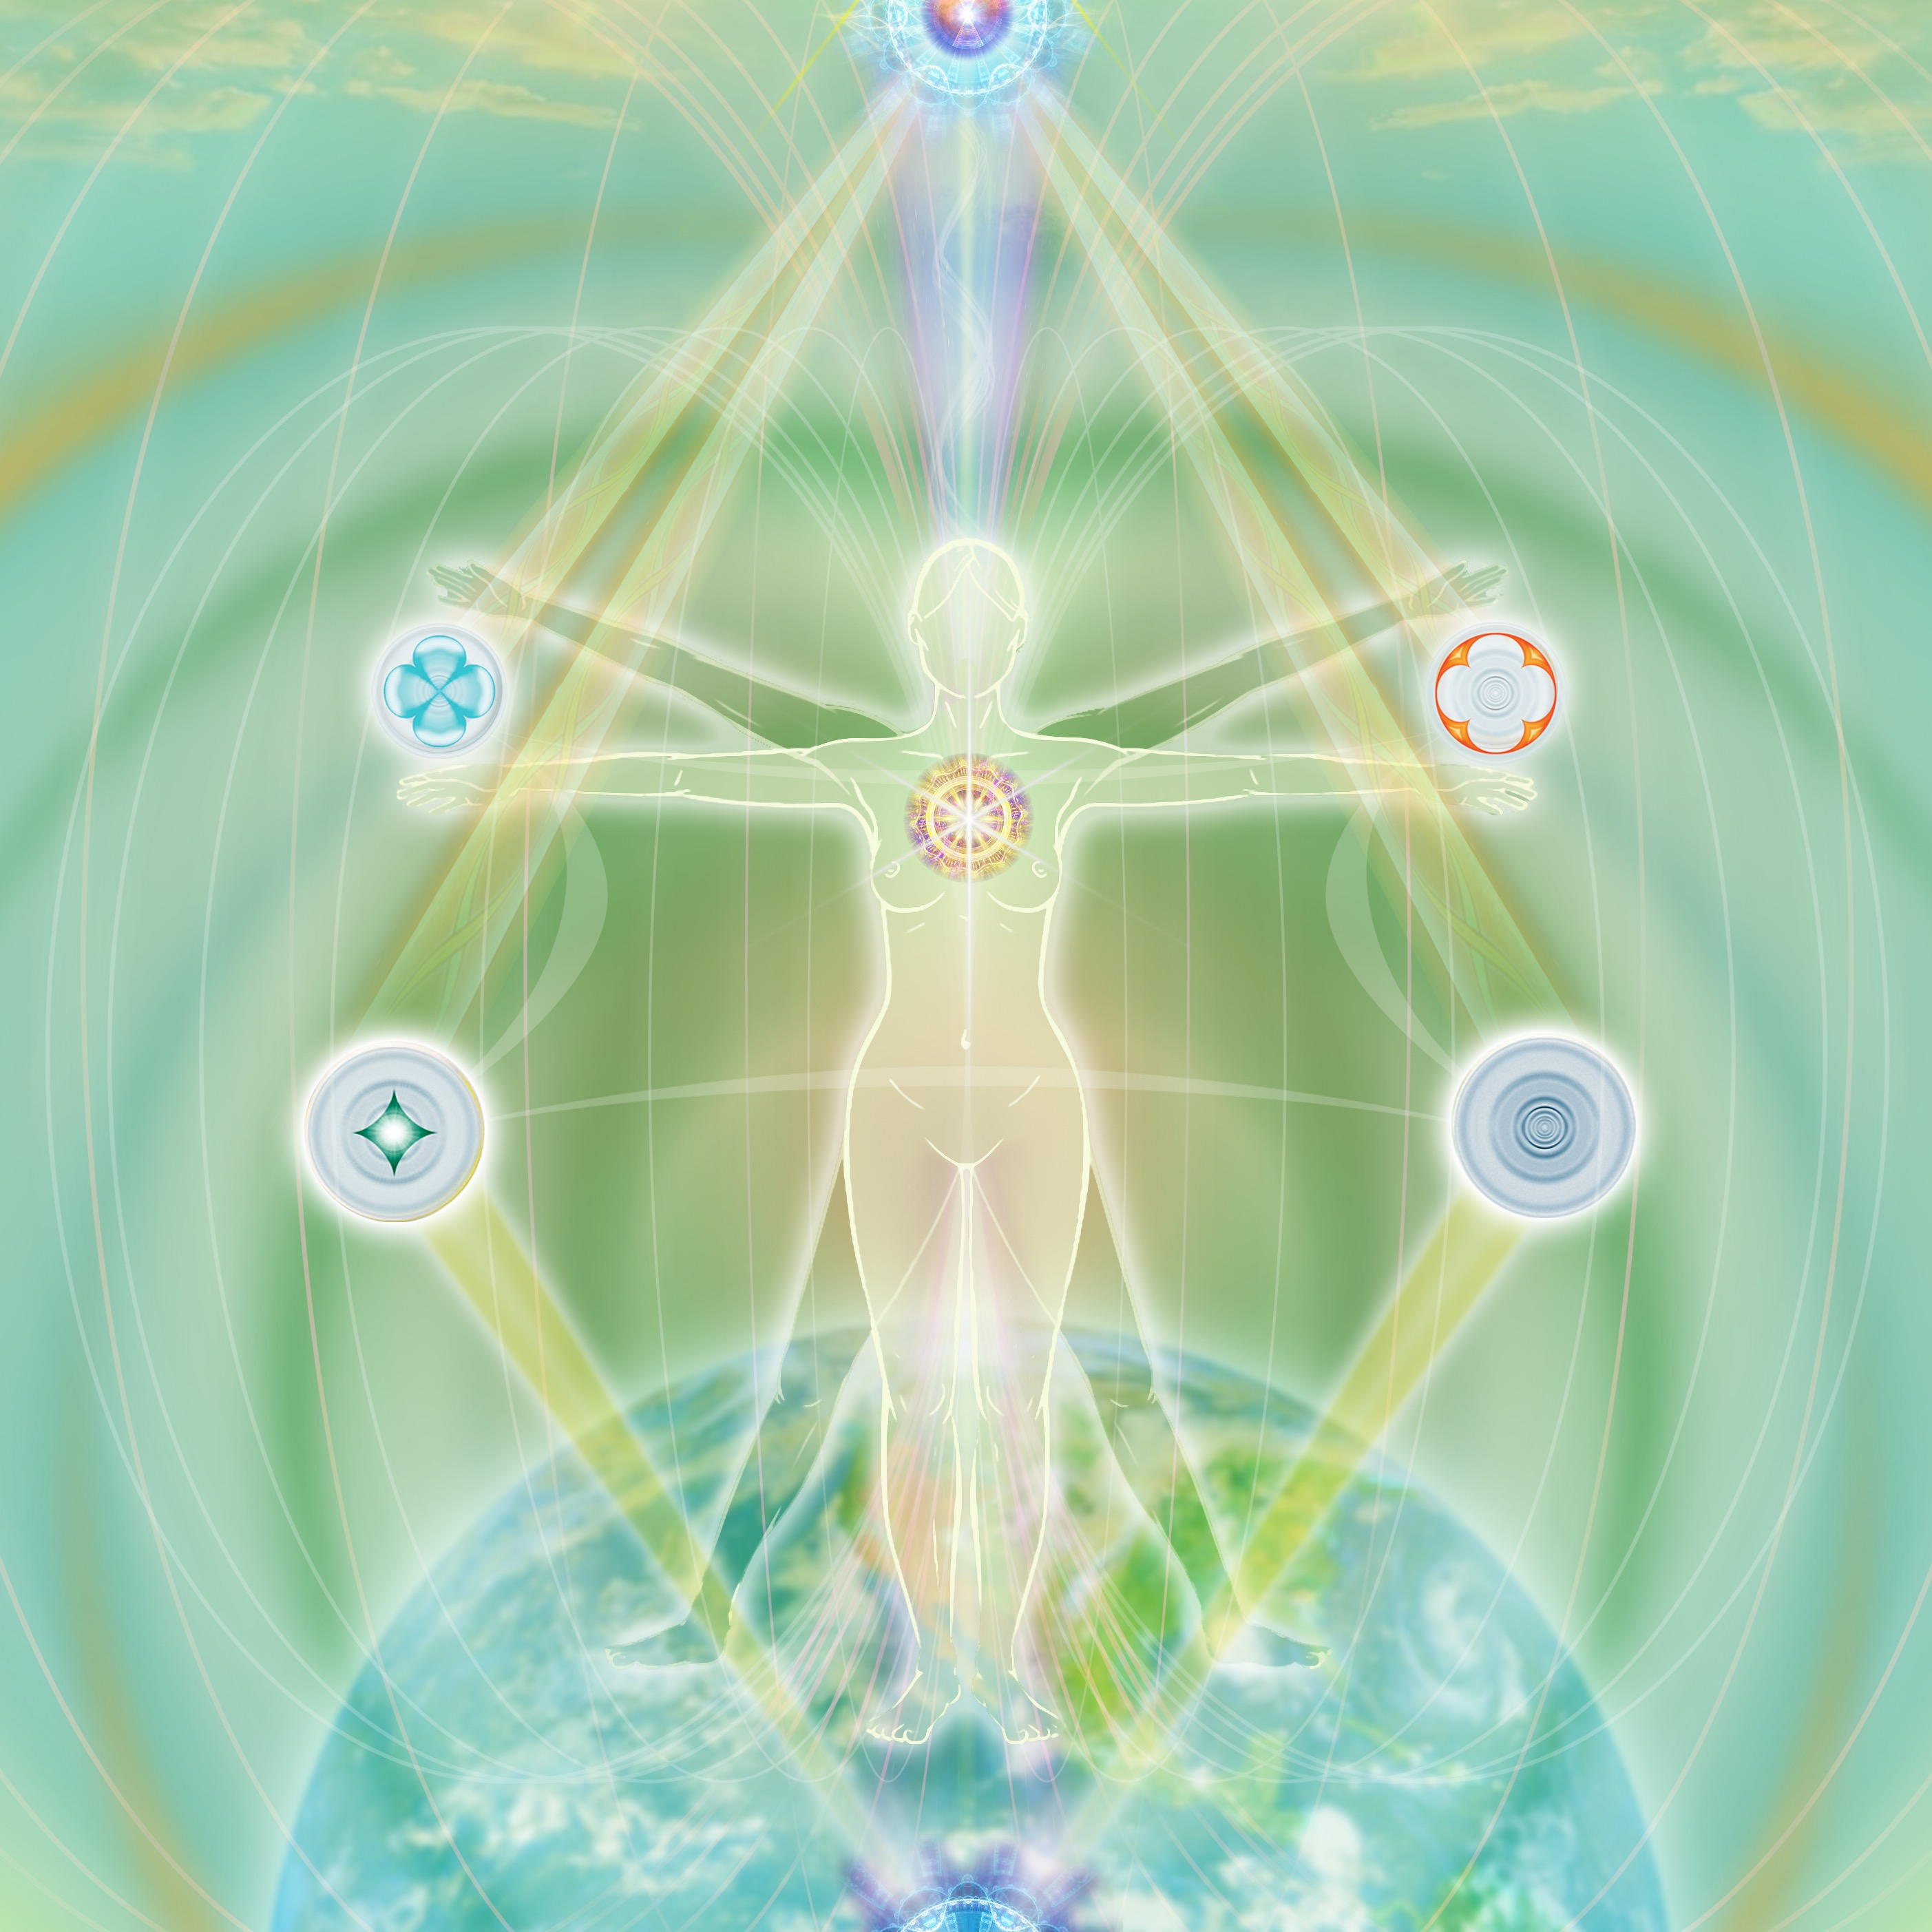 service_28-Day_Vortex_of_Energy_Meditation_-_Dharmic_Immersion.jpg